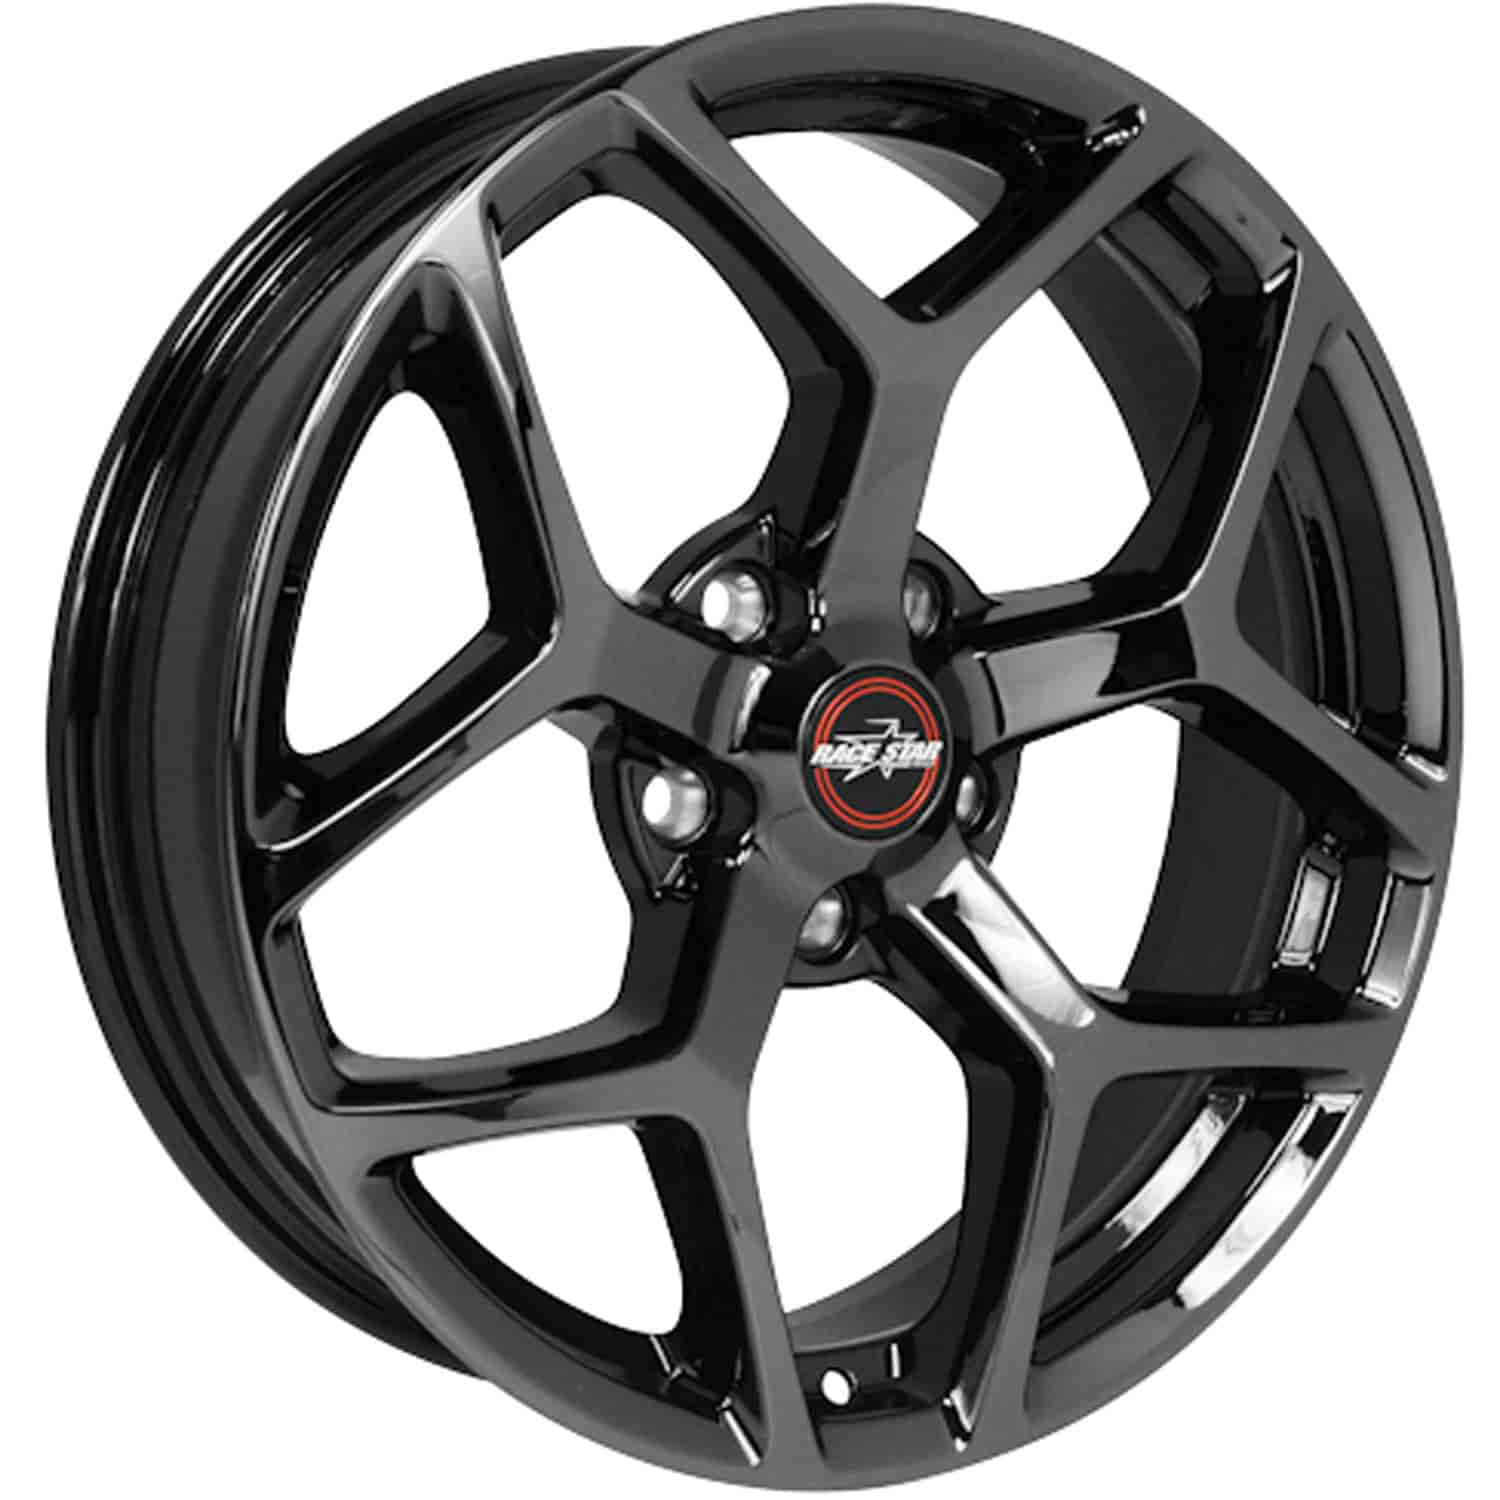 Race Star Wheels 95-745245BC